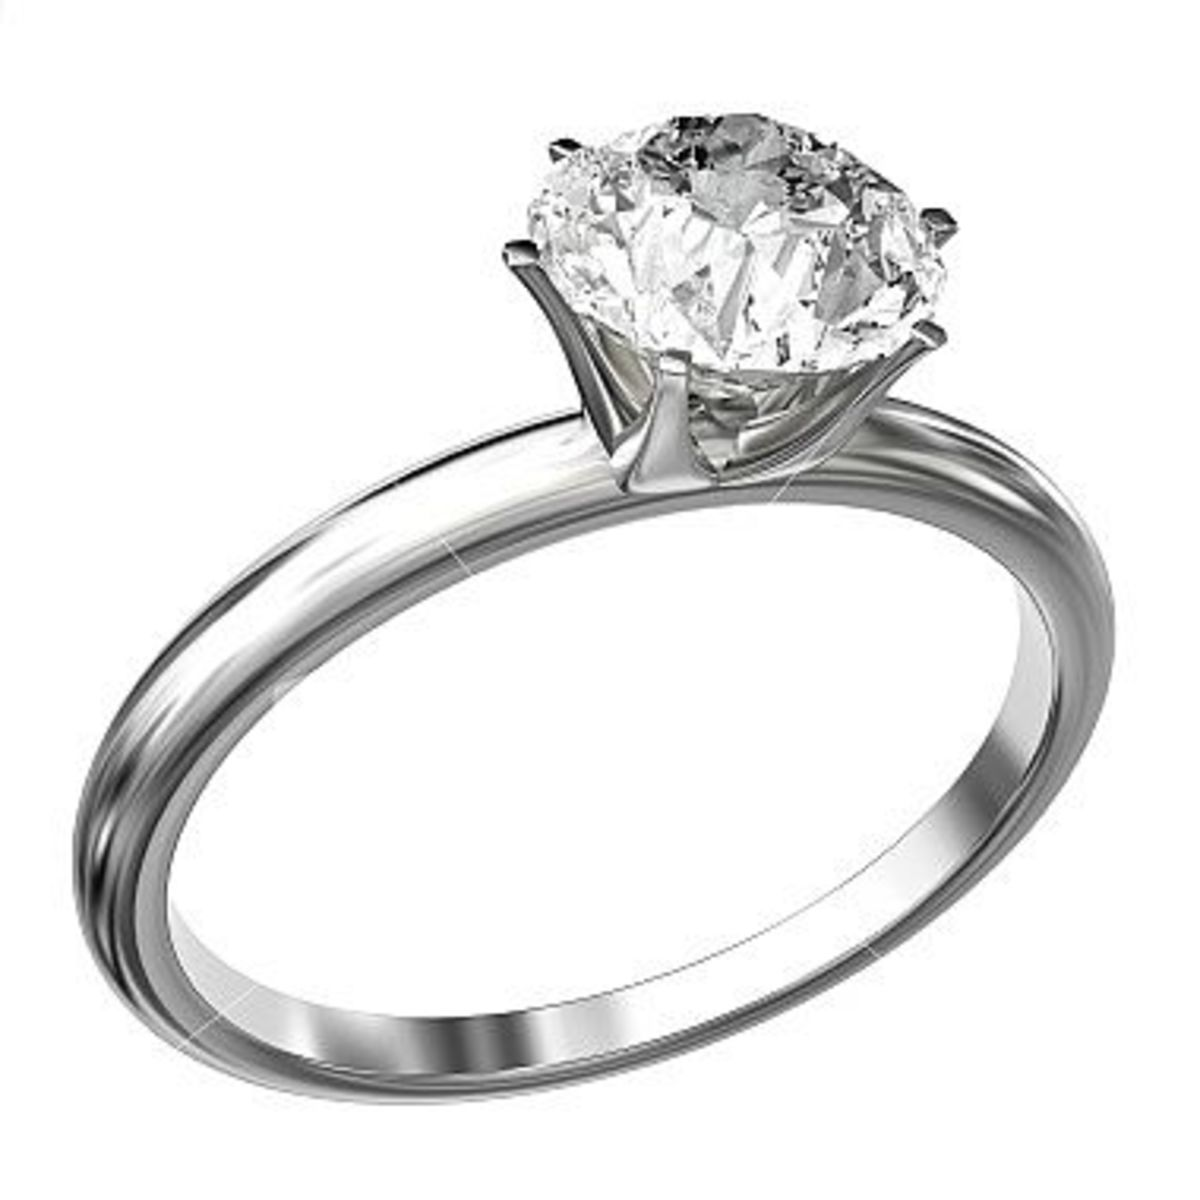 A beautiful ring with moissanite stone